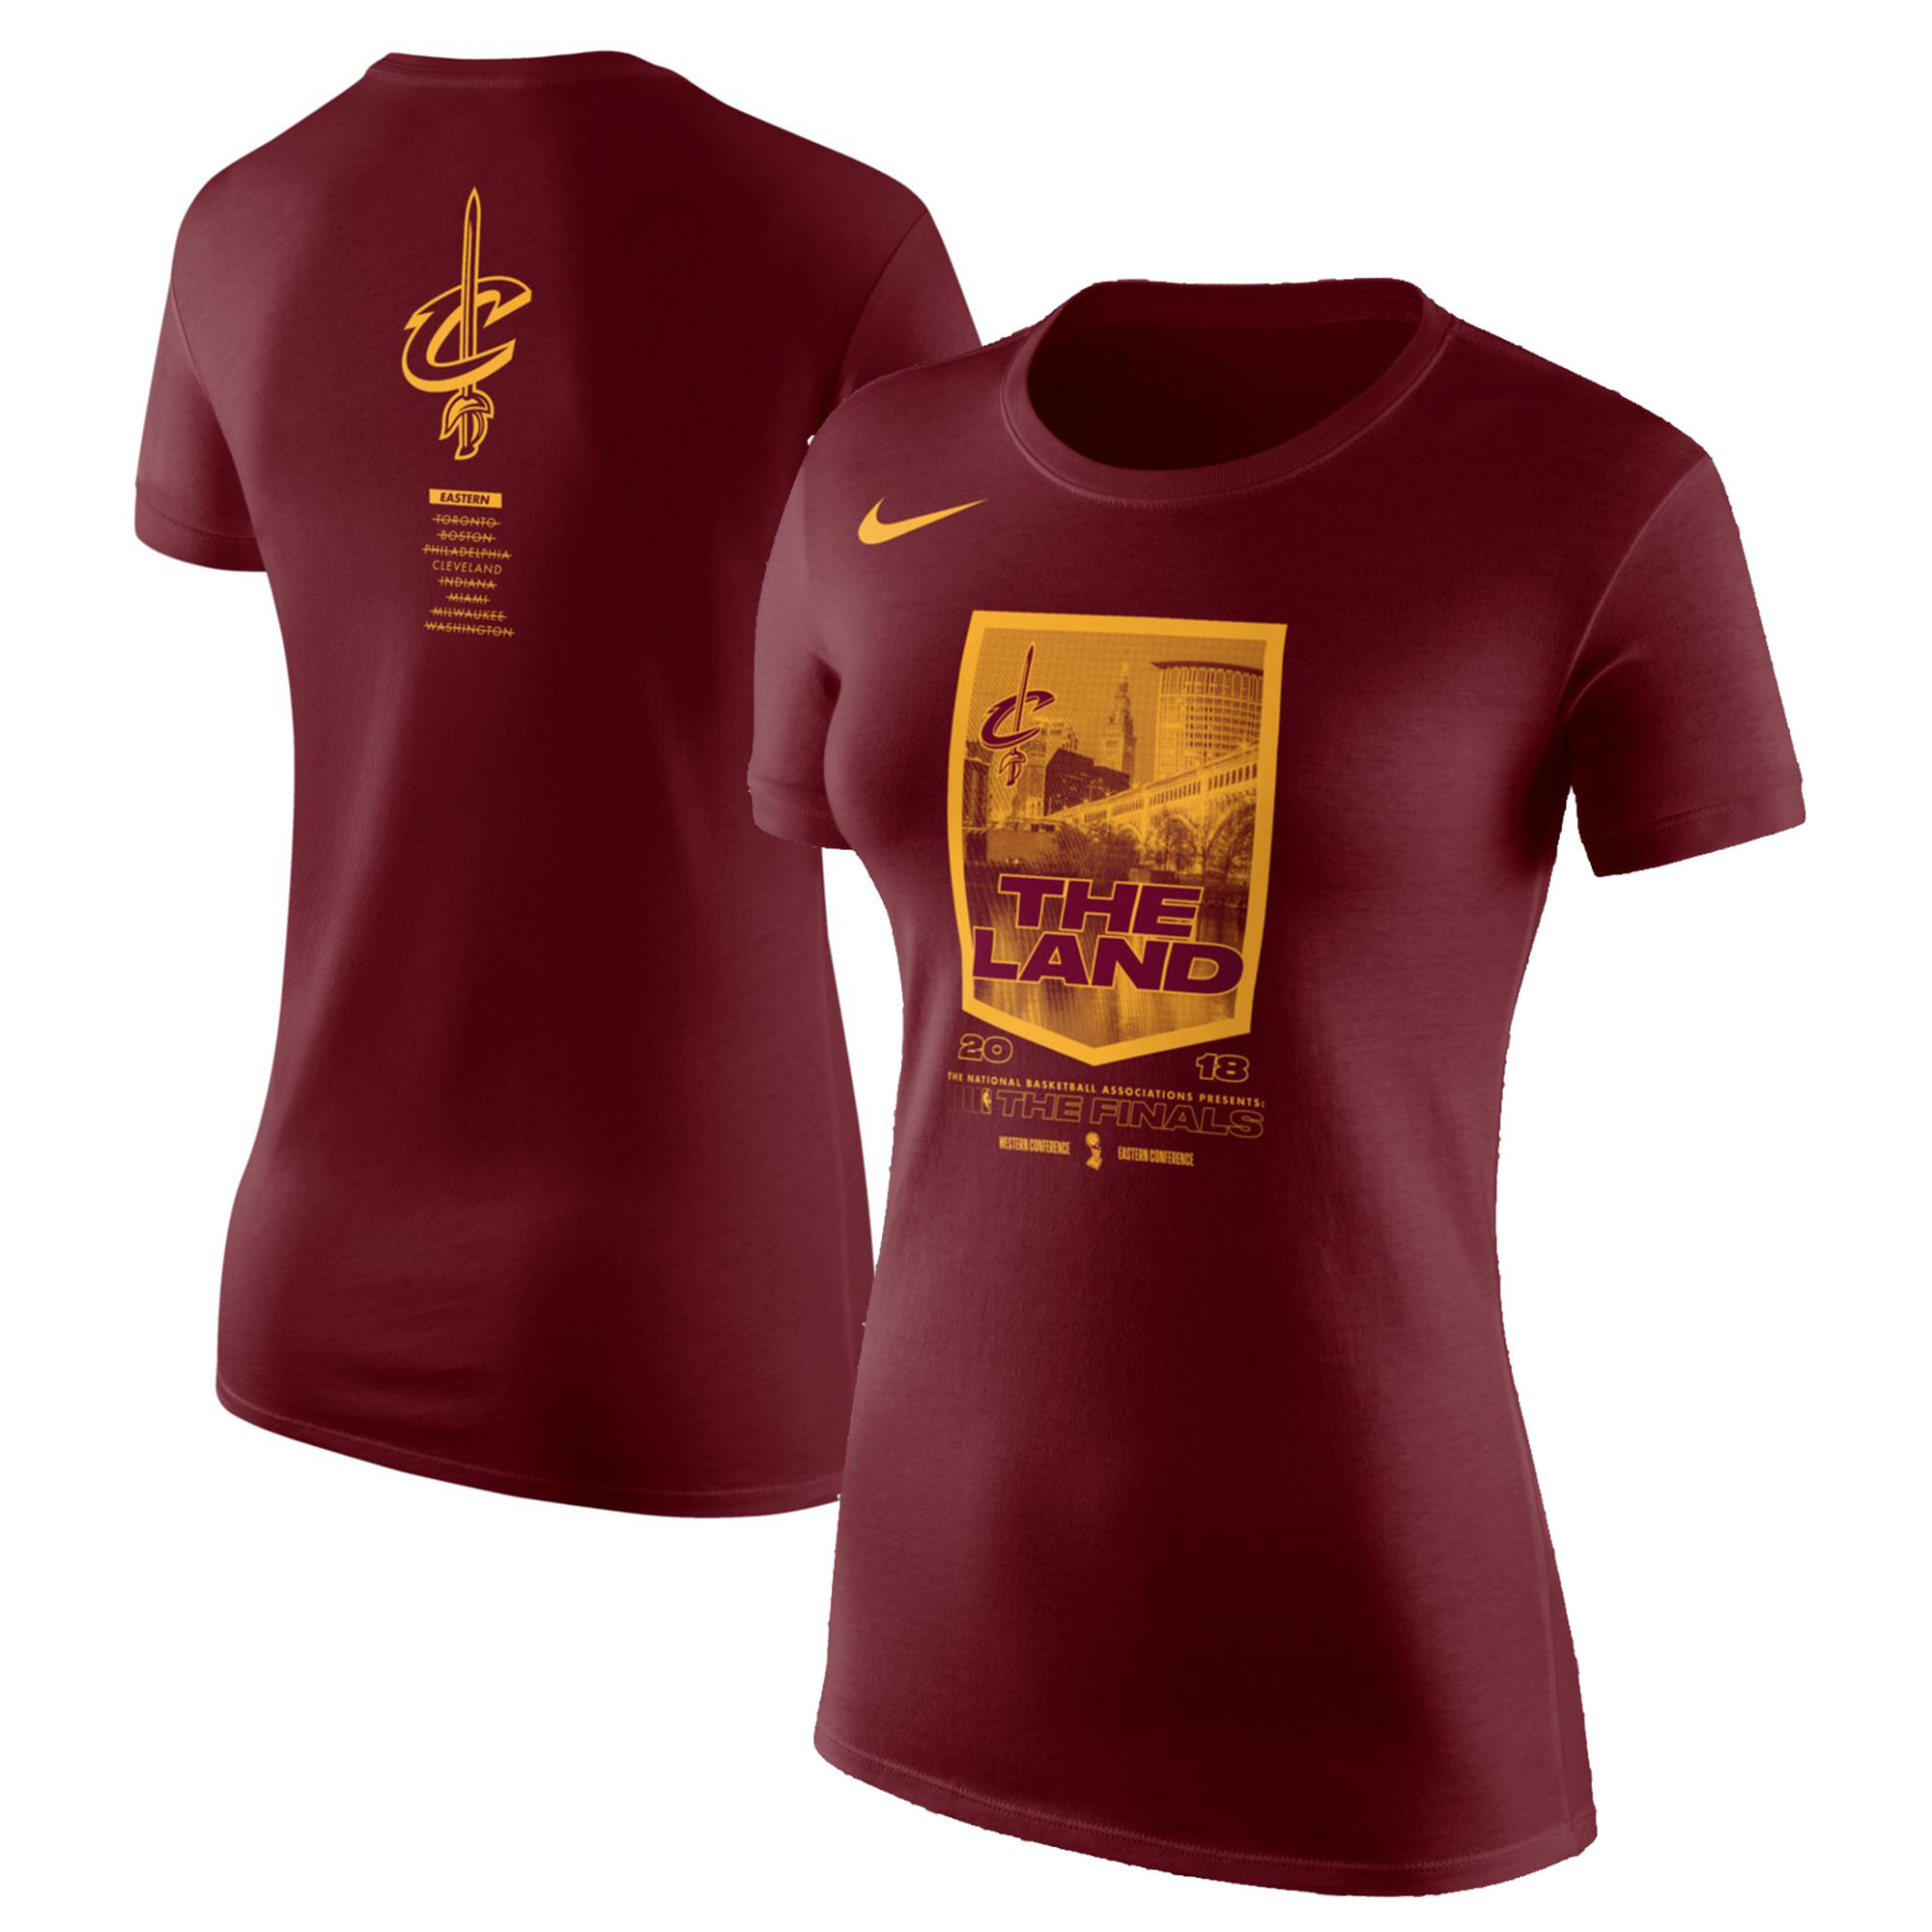 Cleveland Cavaliers Nike Women's 2018 NBA Finals Bound City DNA Cotton Performance T-Shirt Red